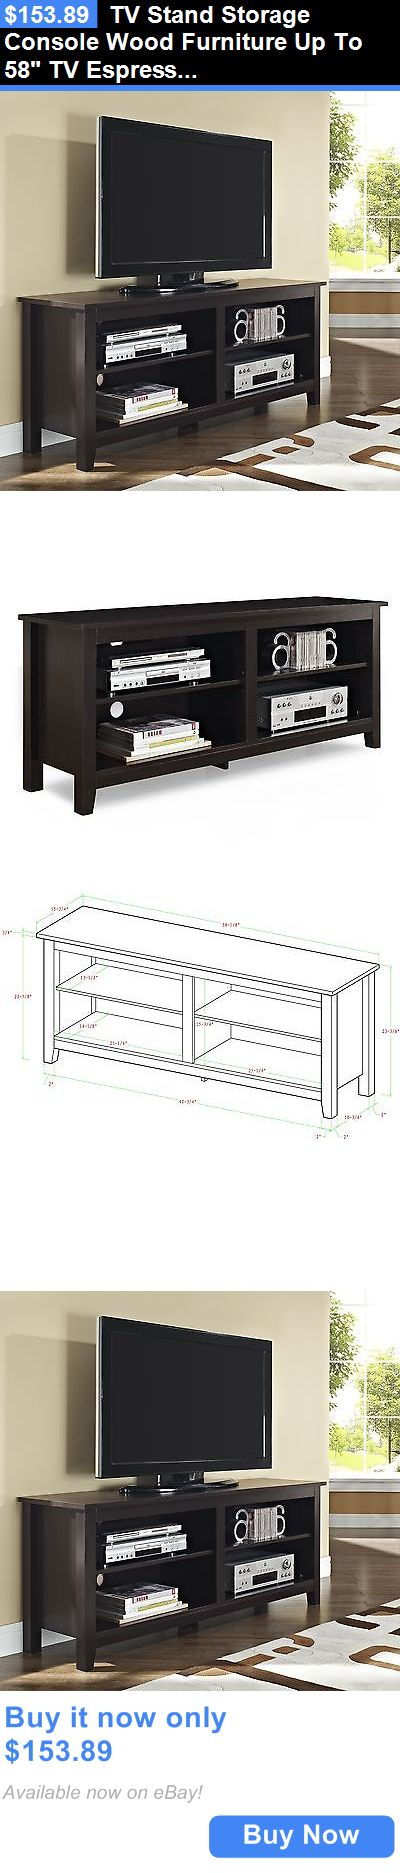 Entertainment Units TV Stands: Tv Stand Storage Console Wood Furniture Up To 58 Tv Espresso BUY IT NOW ONLY: $153.89